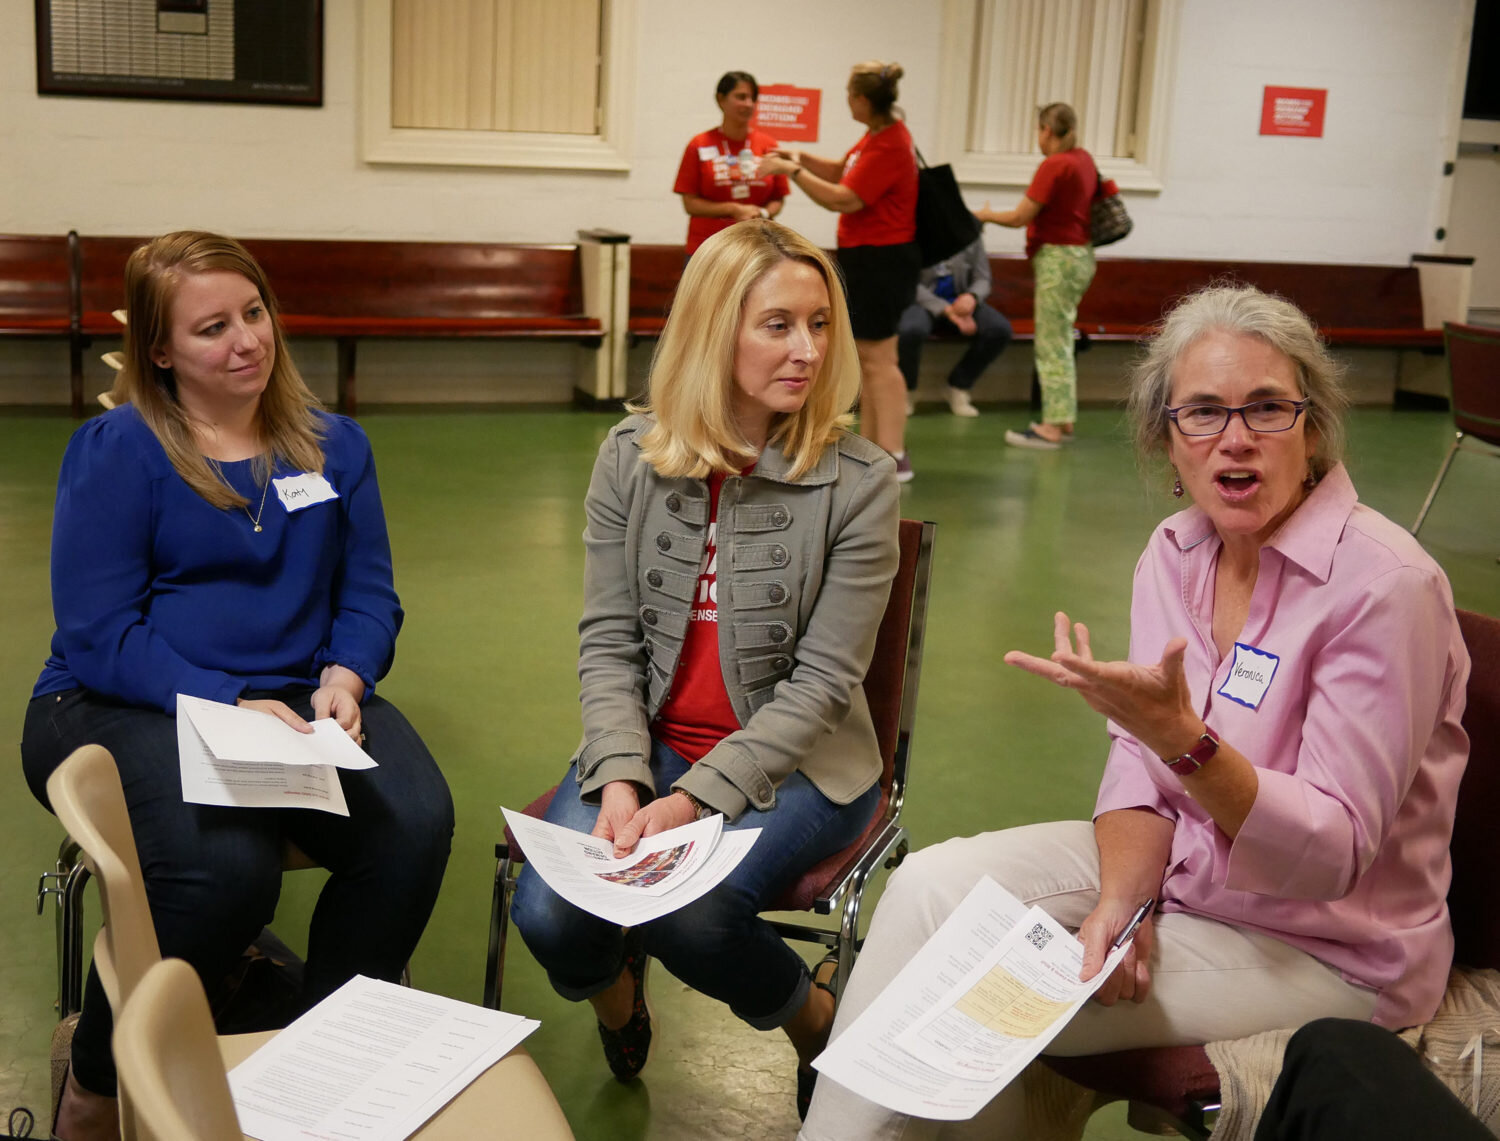 Katy Bloomberg, left, Maureen McGee, center, and Veronica Bartlett, right, train to canvass voters with the group Moms Demand Action in Arlington.Daniella     Cheslow / WAMU